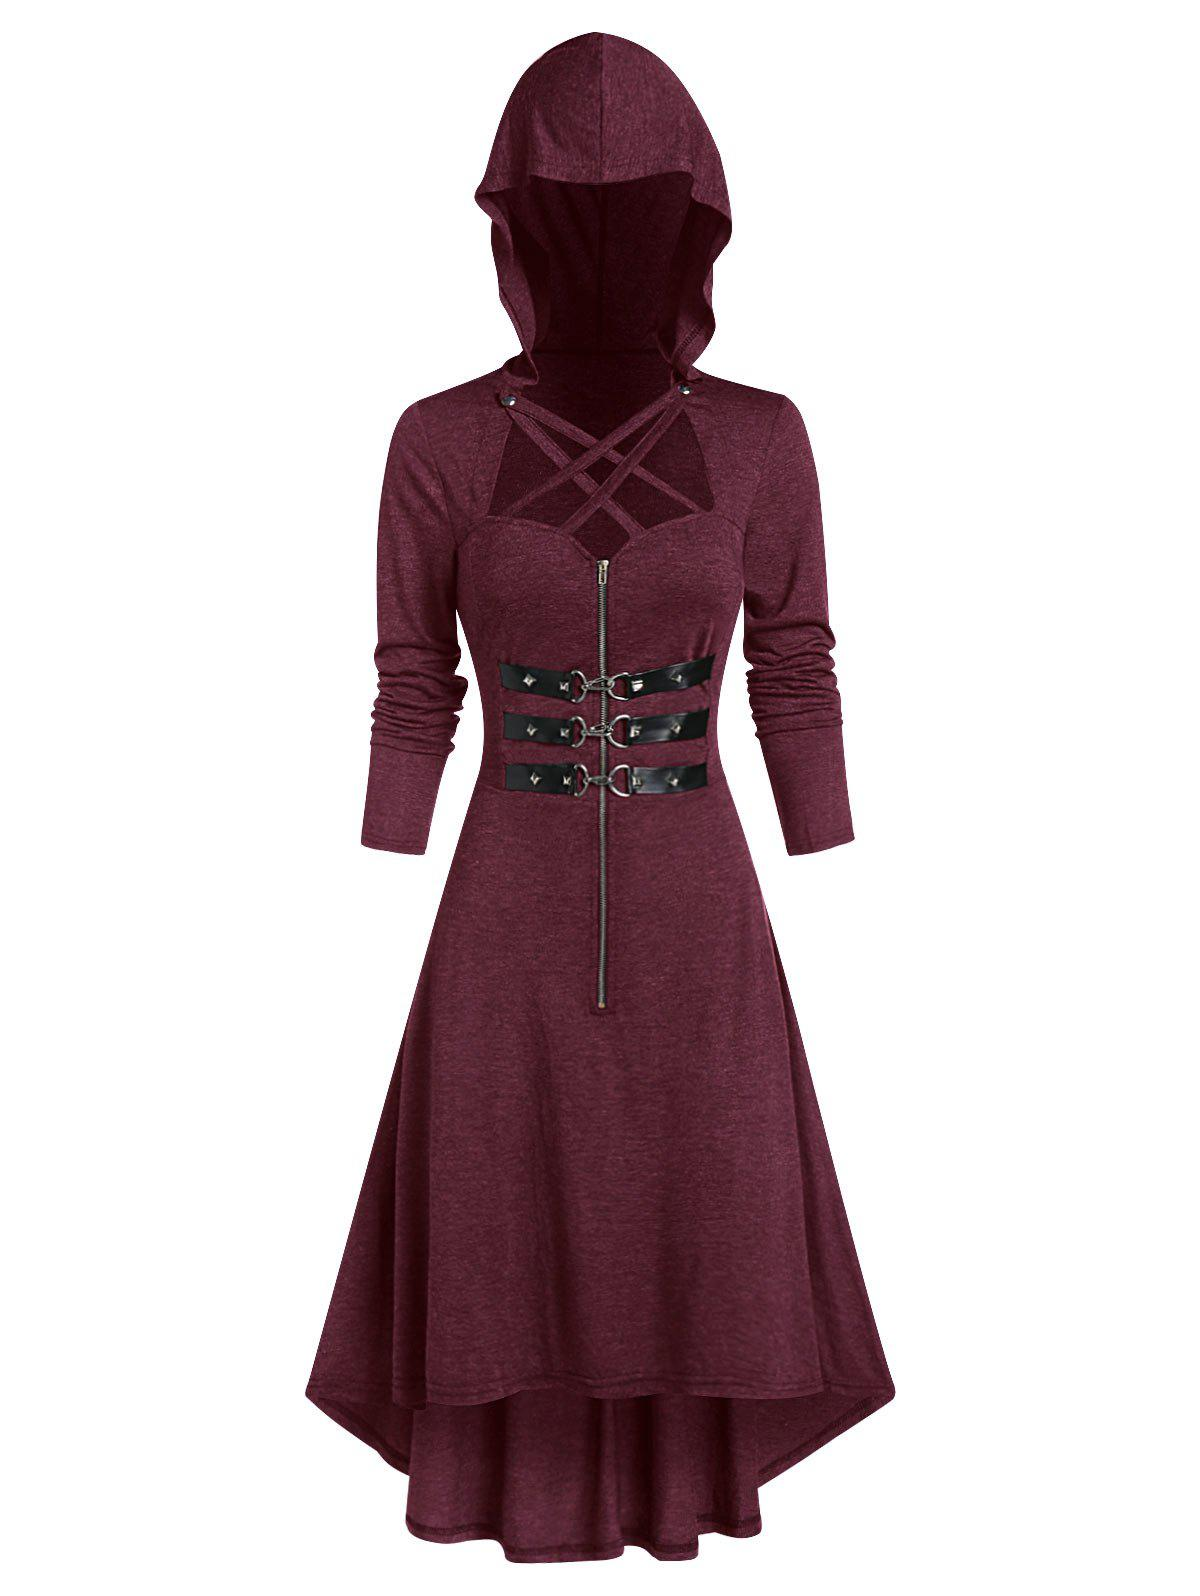 Hooded Lobster Buckle Strap High Low Gothic Dress - FIREBRICK L